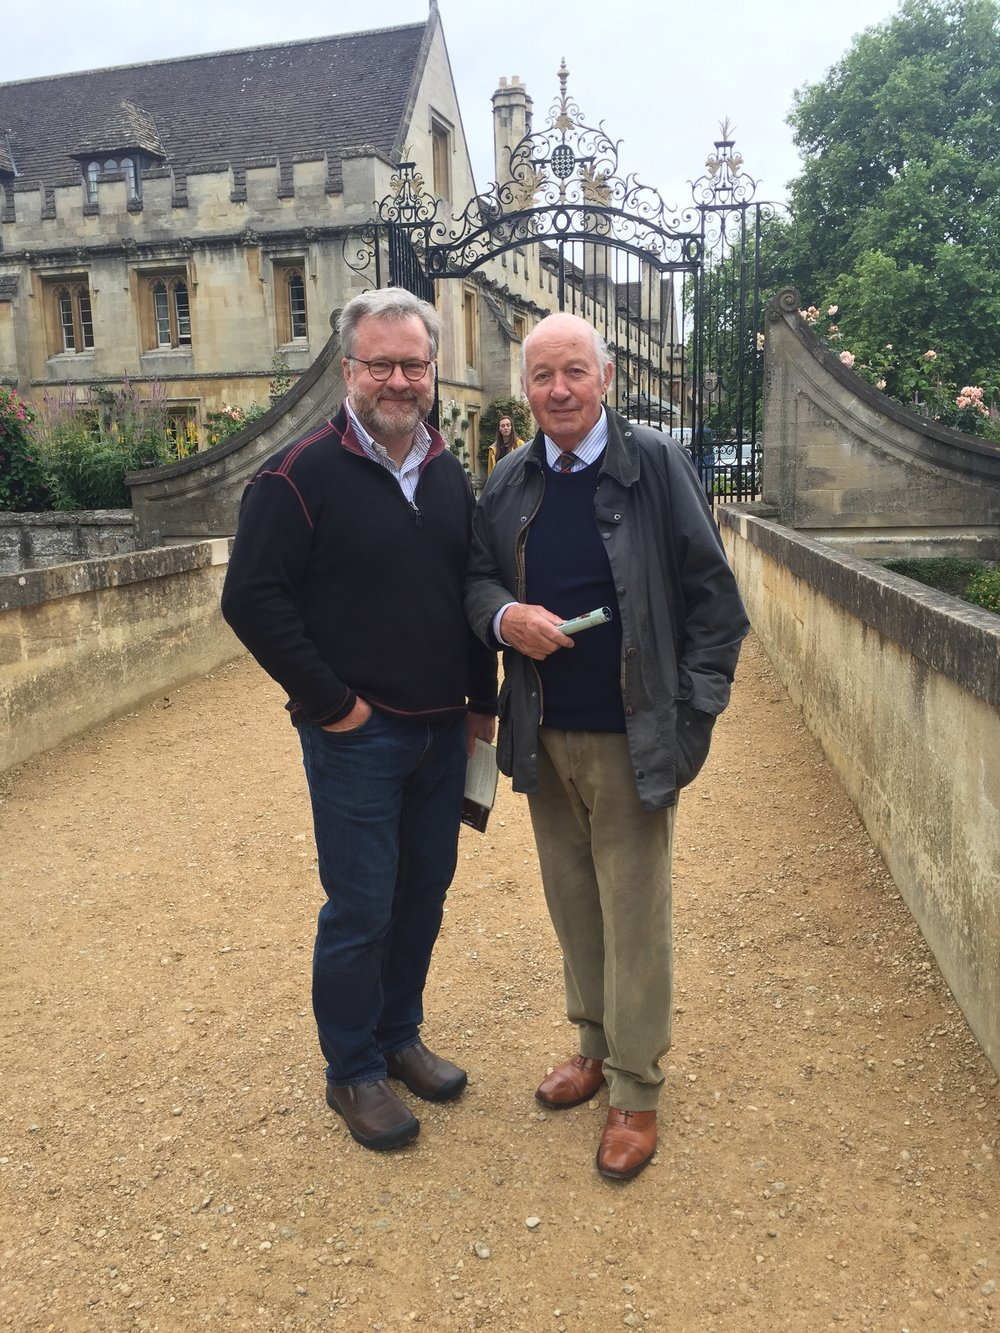 Our Oxford Guide, Tony Gregory: we rented his cottage while in Stow.